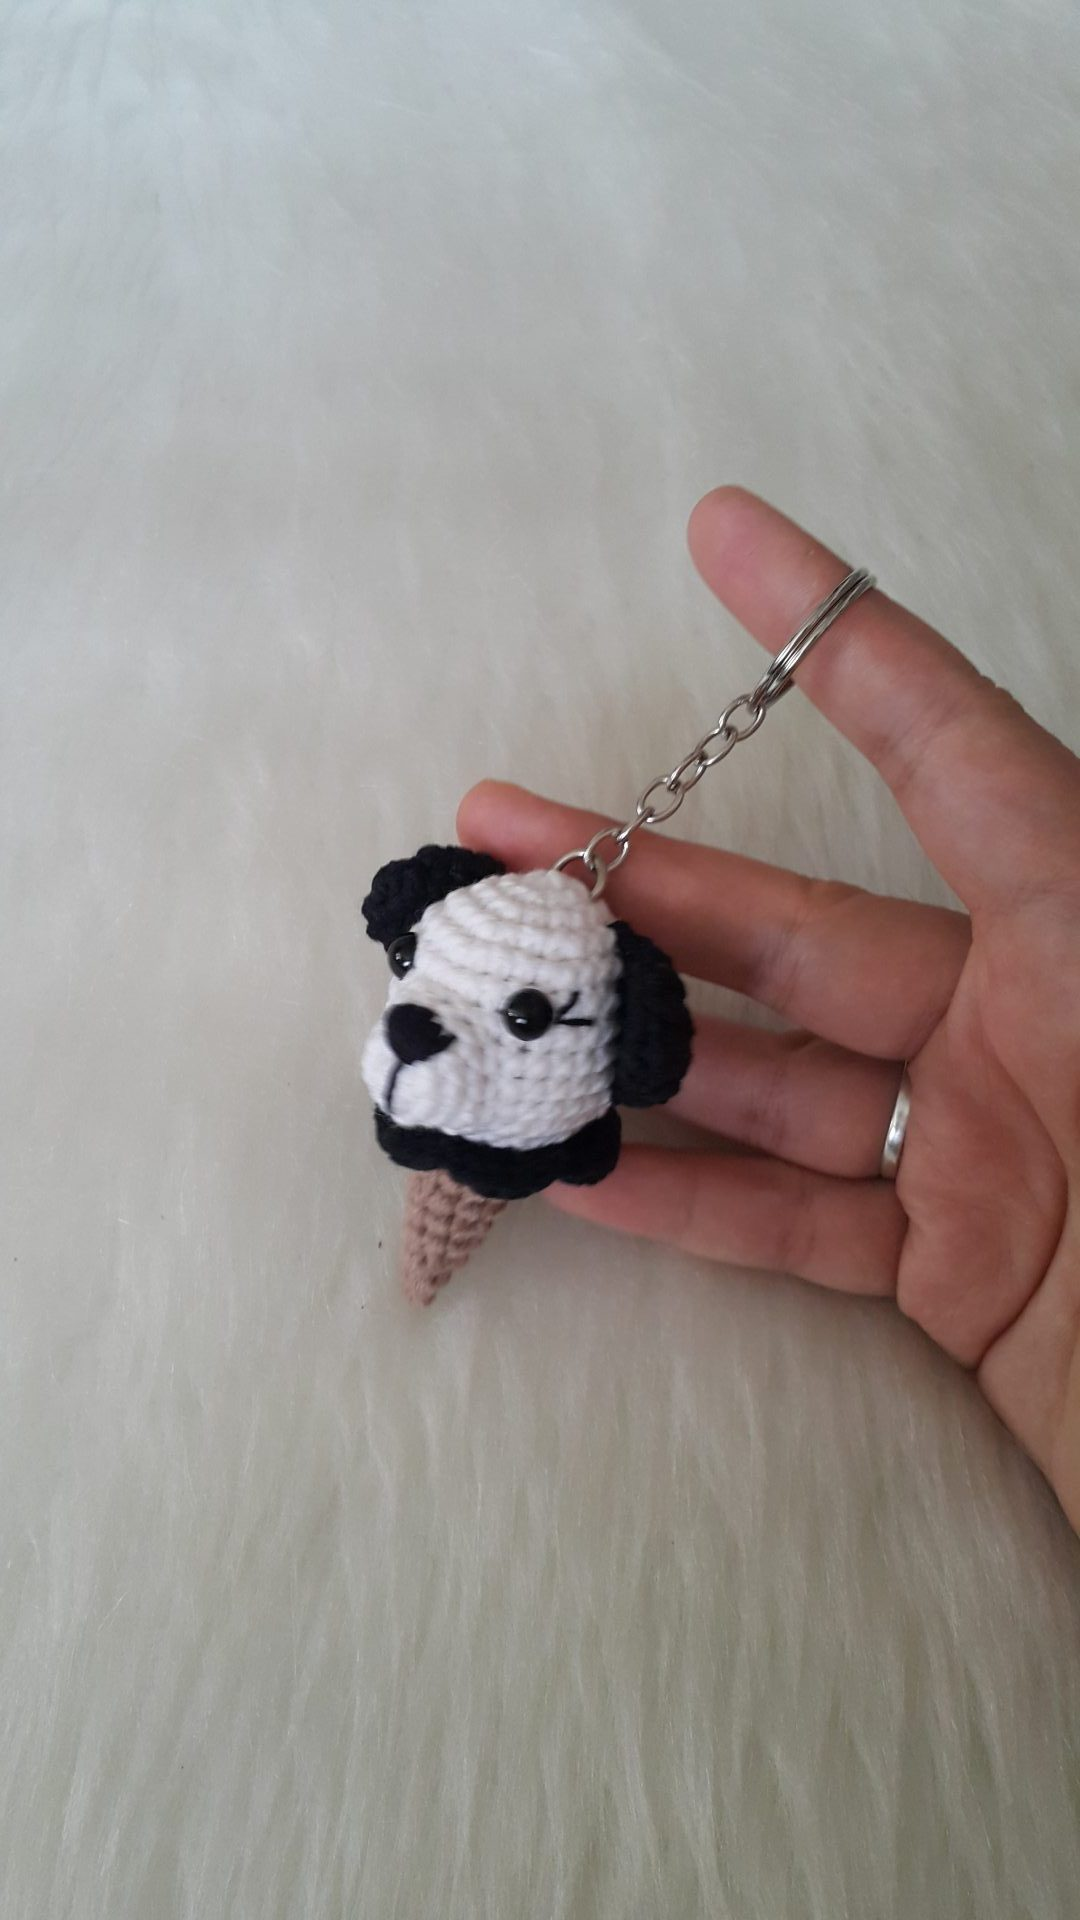 Amigurumi PANDA ANAHTARLIK, BROŞ,TOKA - YouTube | Make it yourself ... | 1920x1080